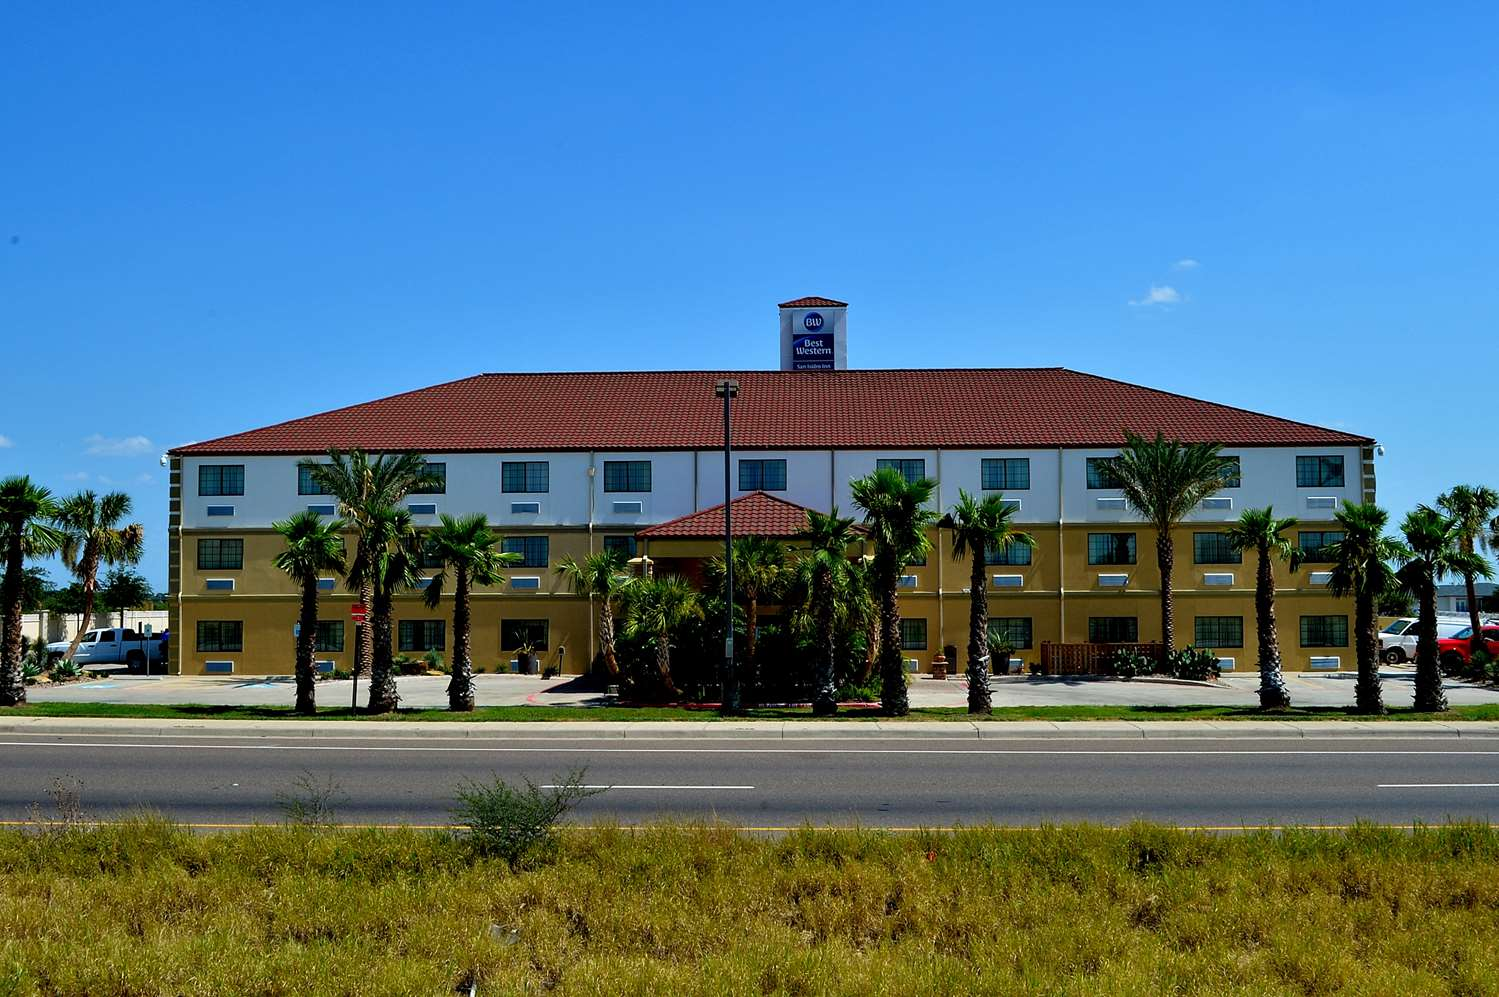 Best western san isidro inn laredo tx see discounts - Laredo civic center swimming pool ...